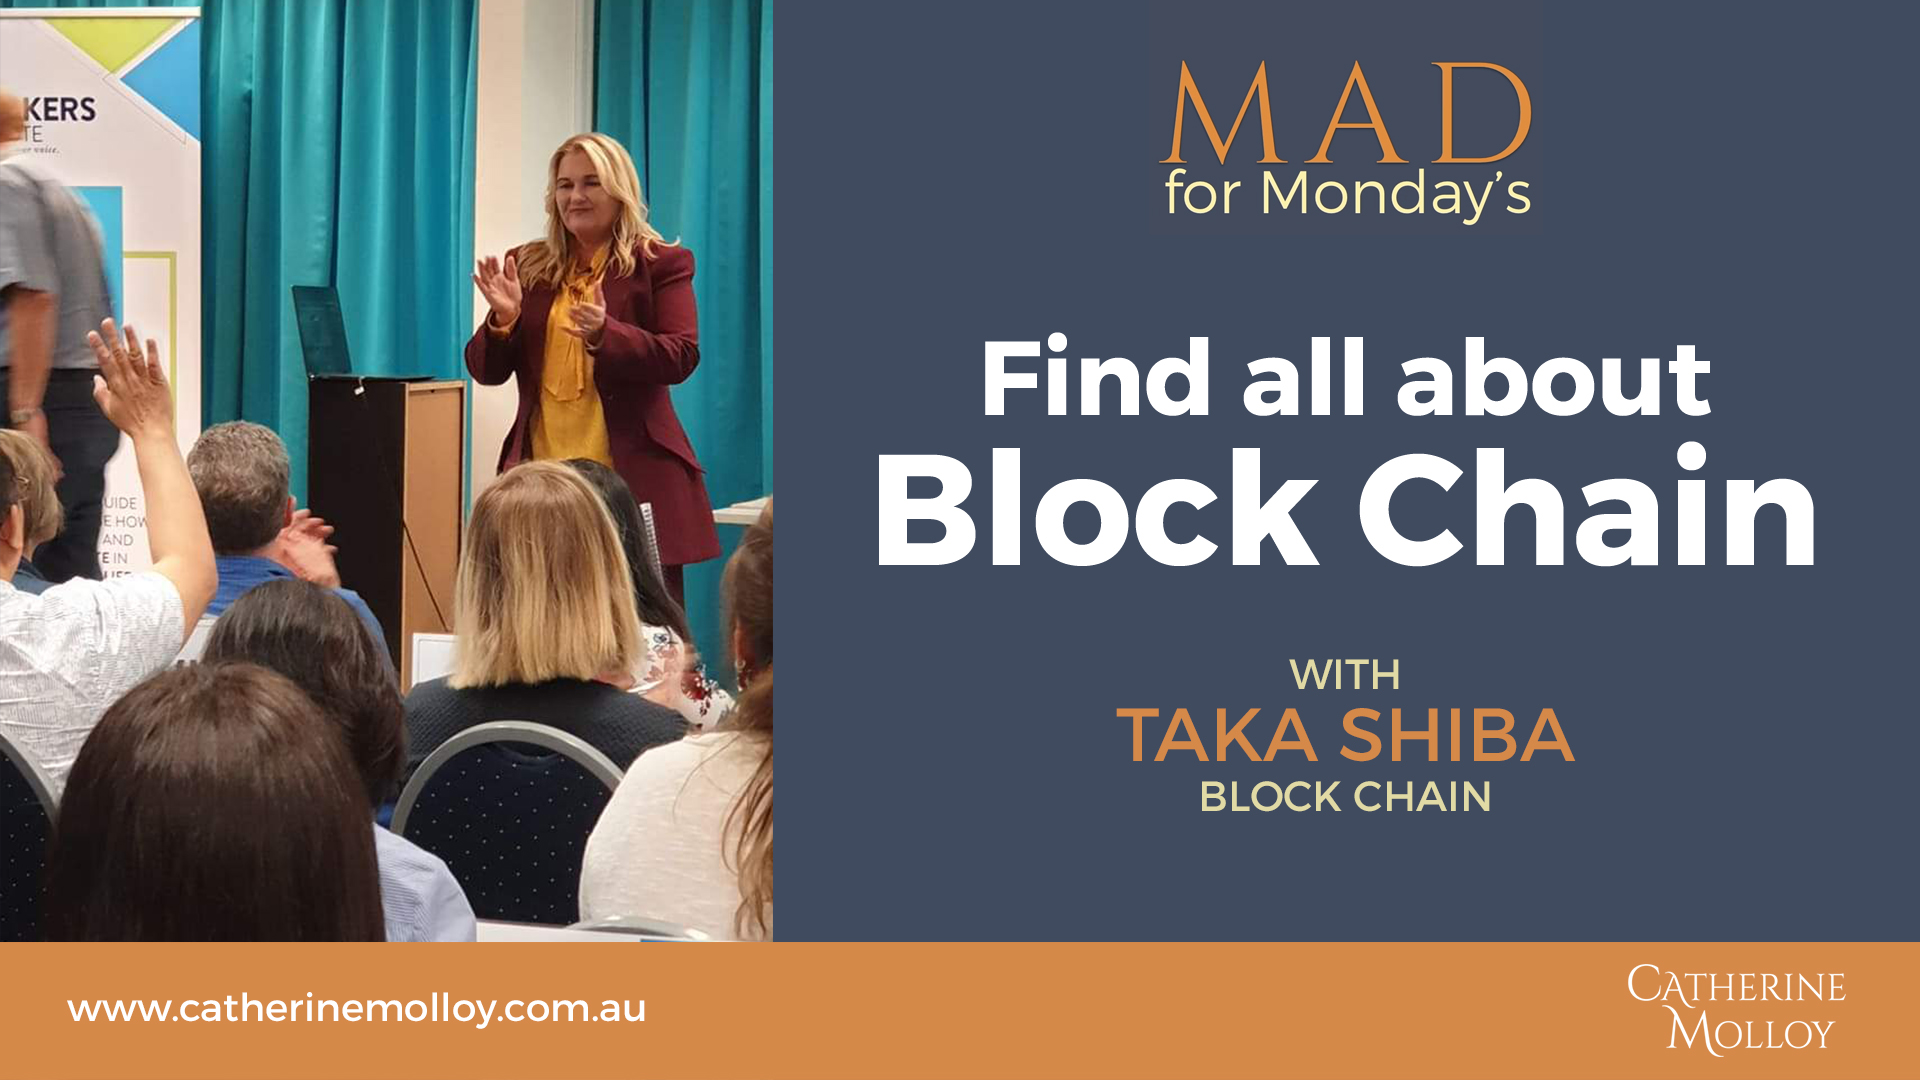 MAD for Monday's – Find all about Block Chain